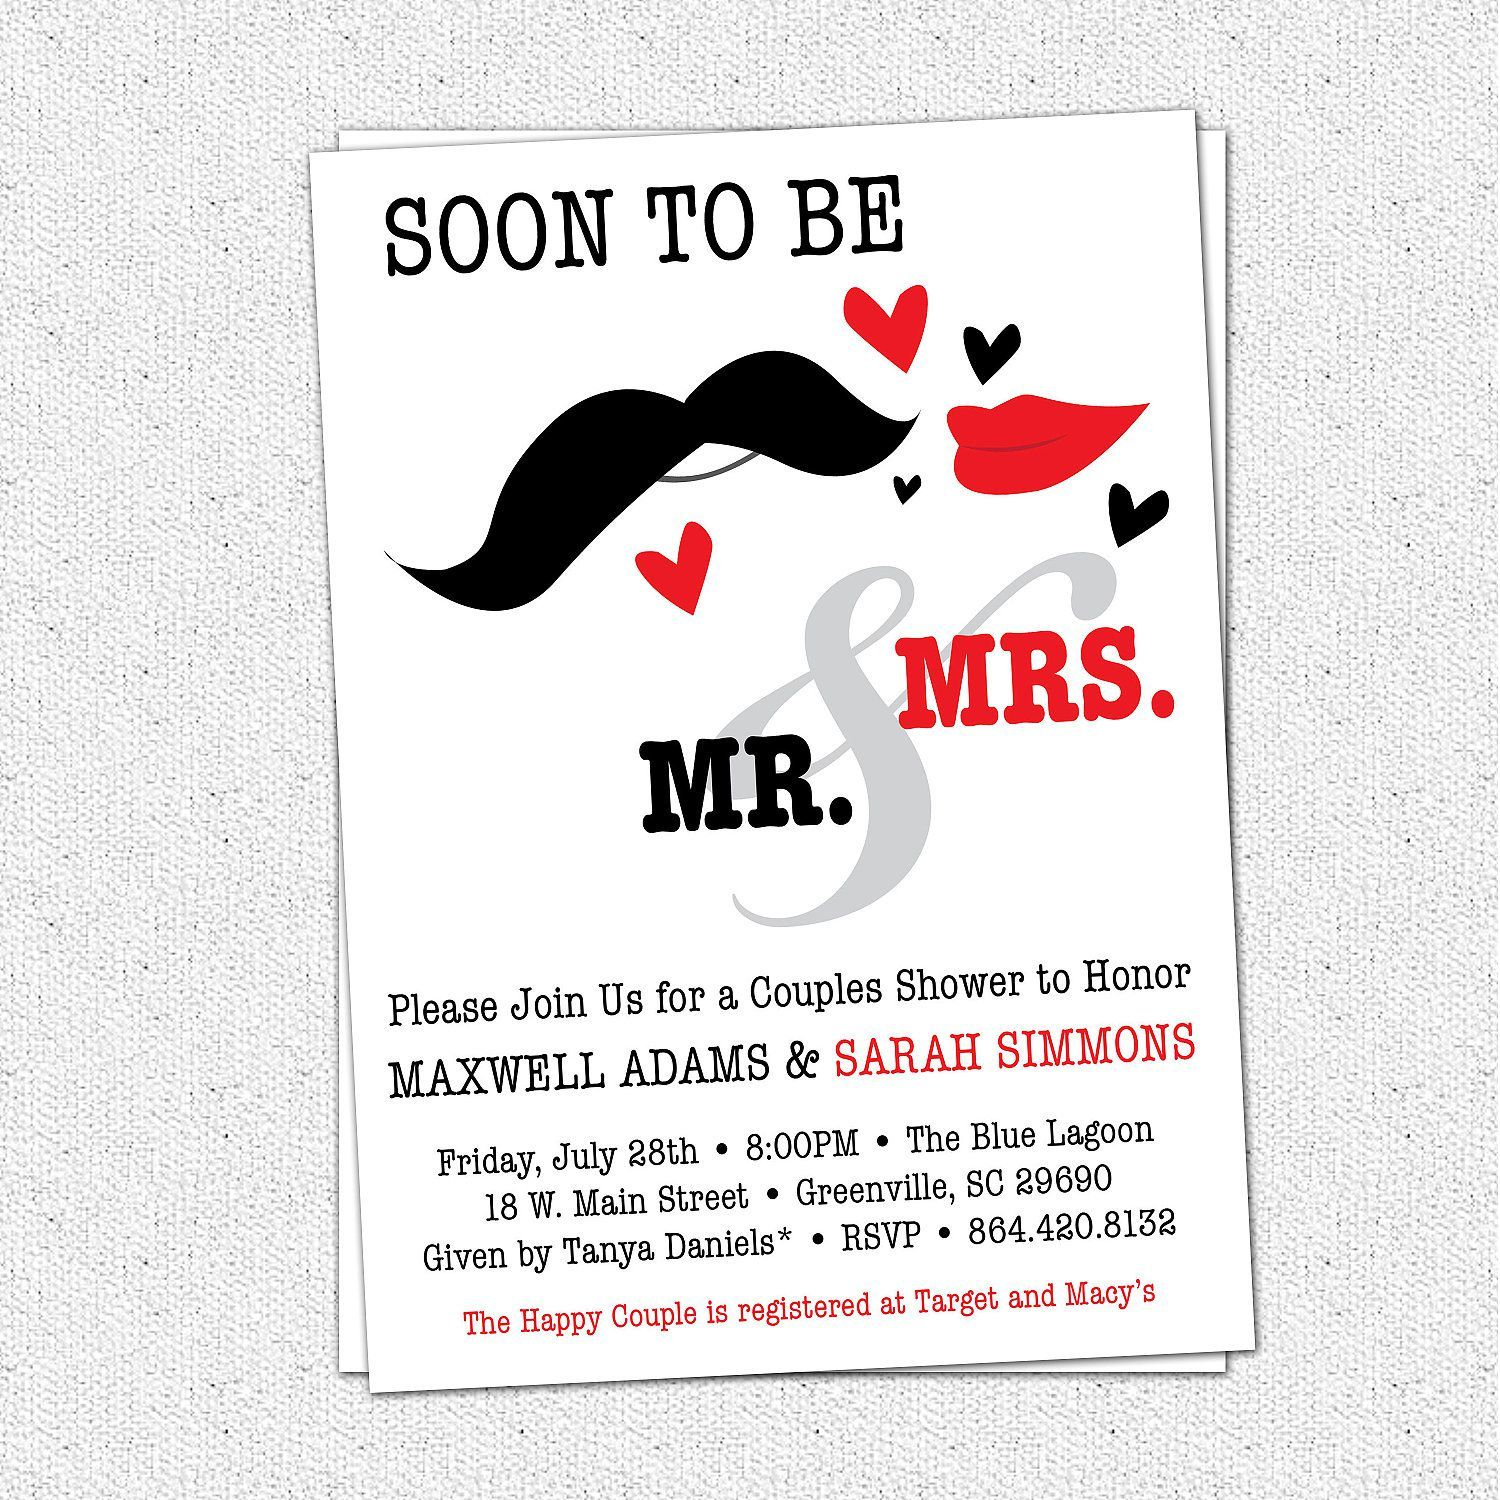 Couples Wedding Shower Invitations Templates Free Invitations - Couples wedding shower invitations templates free